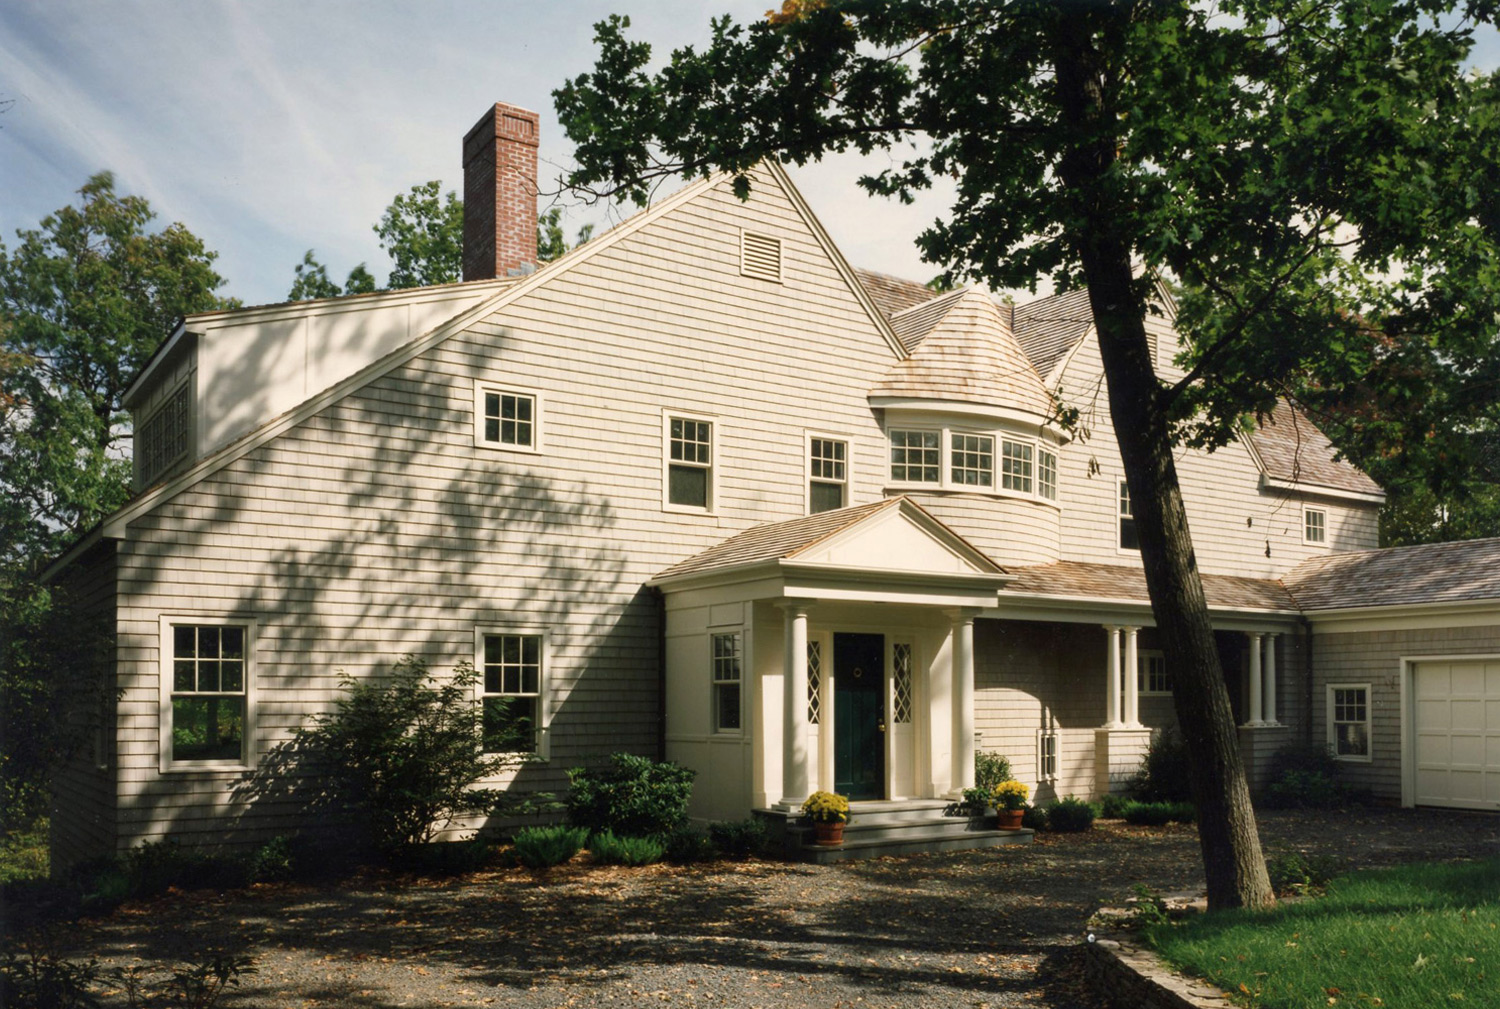 Private Residence, Middletown, CT